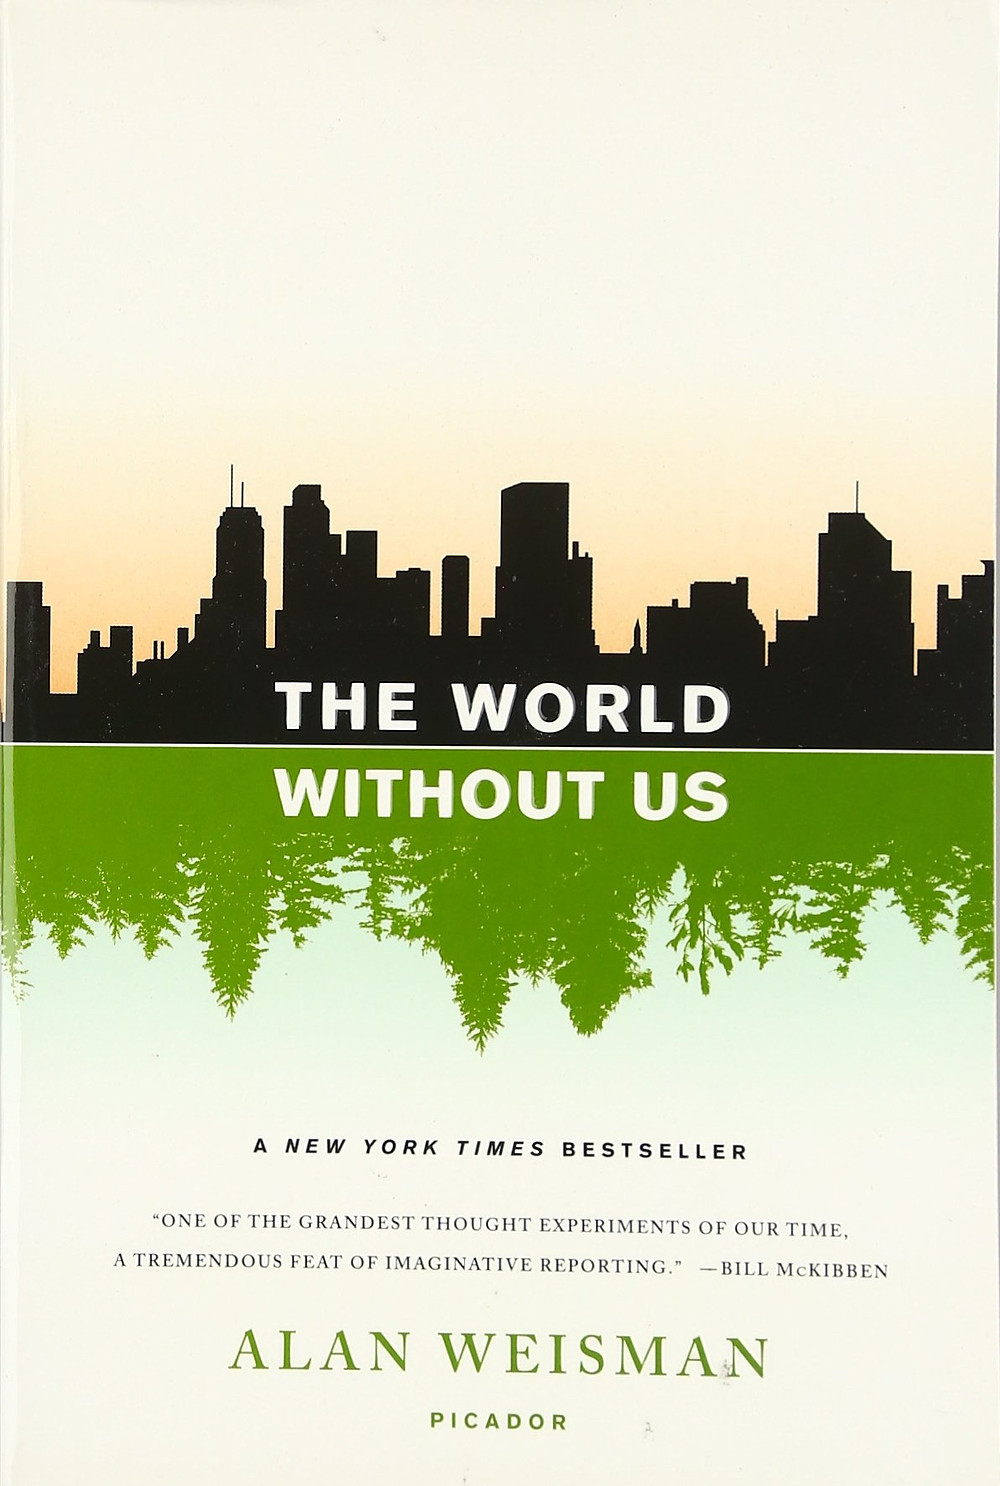 Alan Weisman, The World Without Us explores ecology and society with or without us